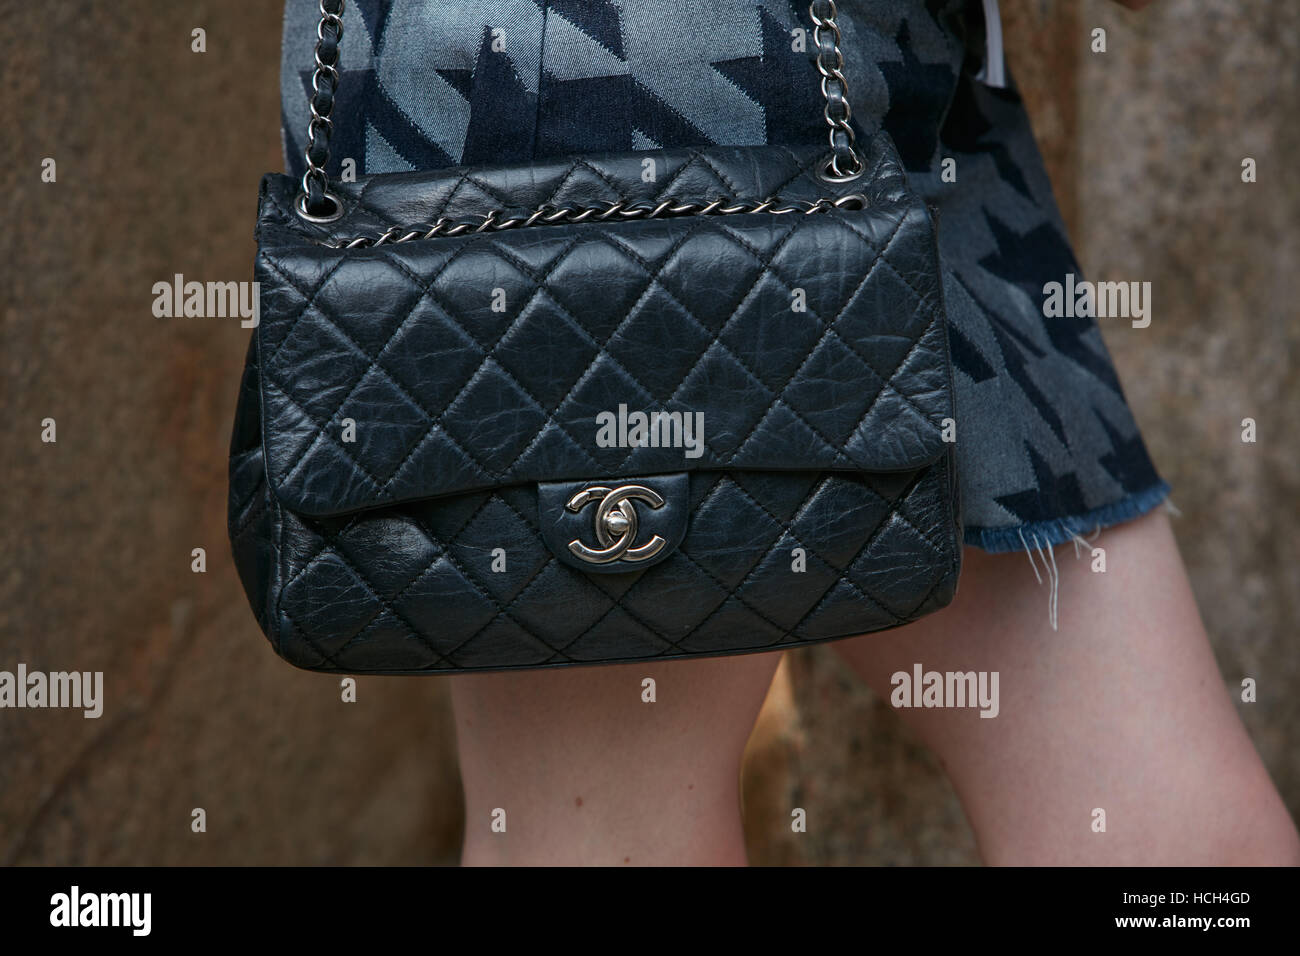 f14d7869383 Woman with black Chanel leather bag before Giorgio Armani fashion show,  Milan Fashion Week street style on September 23, 2016.